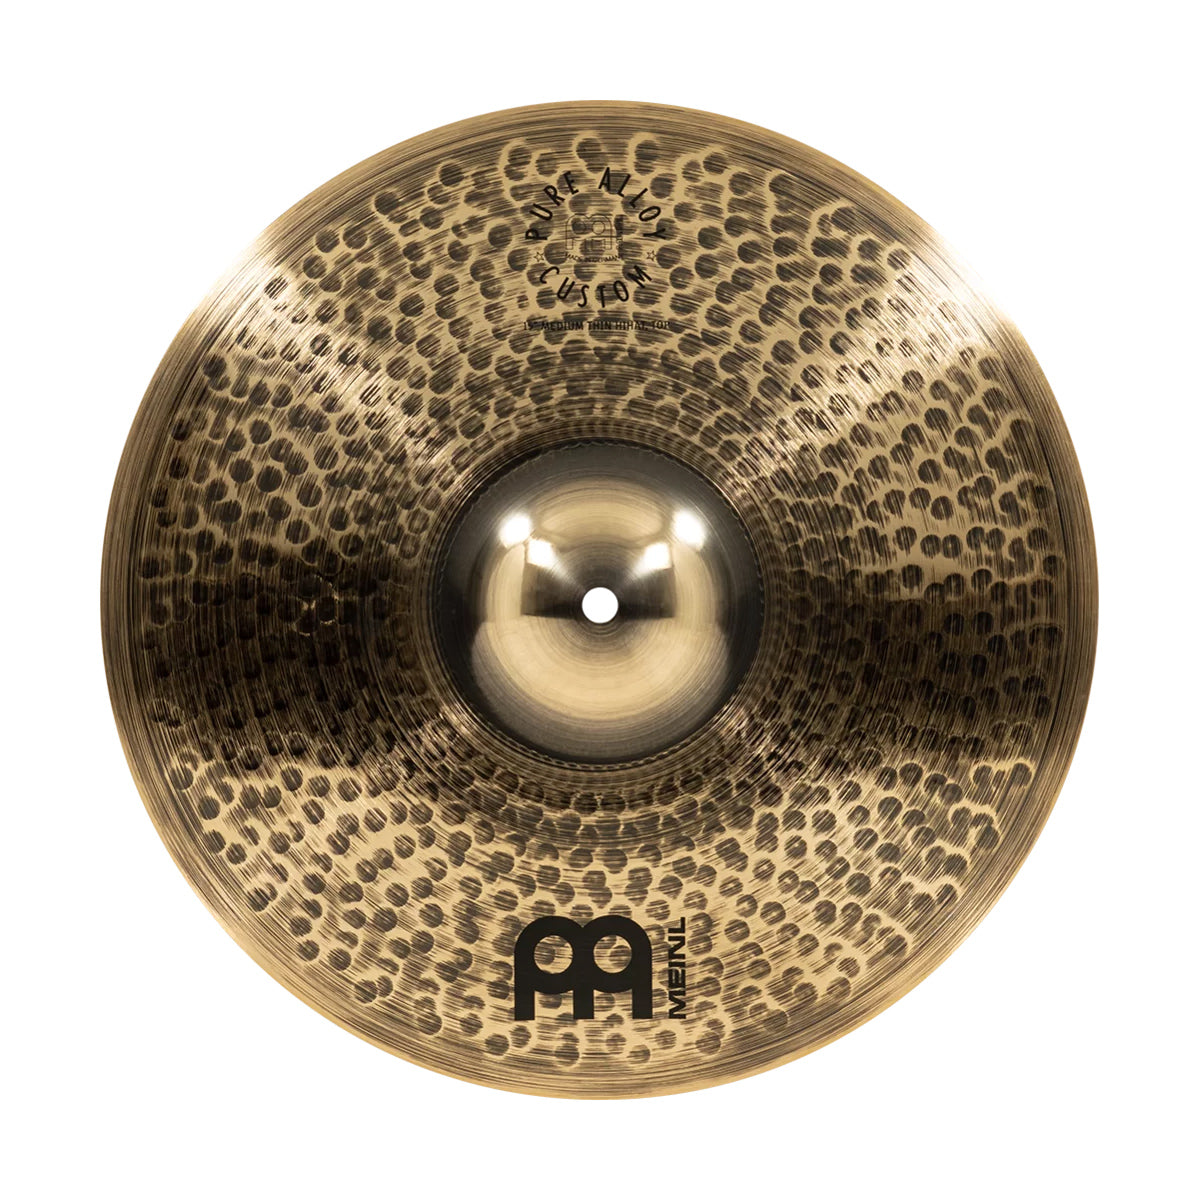 Meinl 15MTH Pure Alloy Custom 15inch Medium Thin Hi-Hats Cymbals